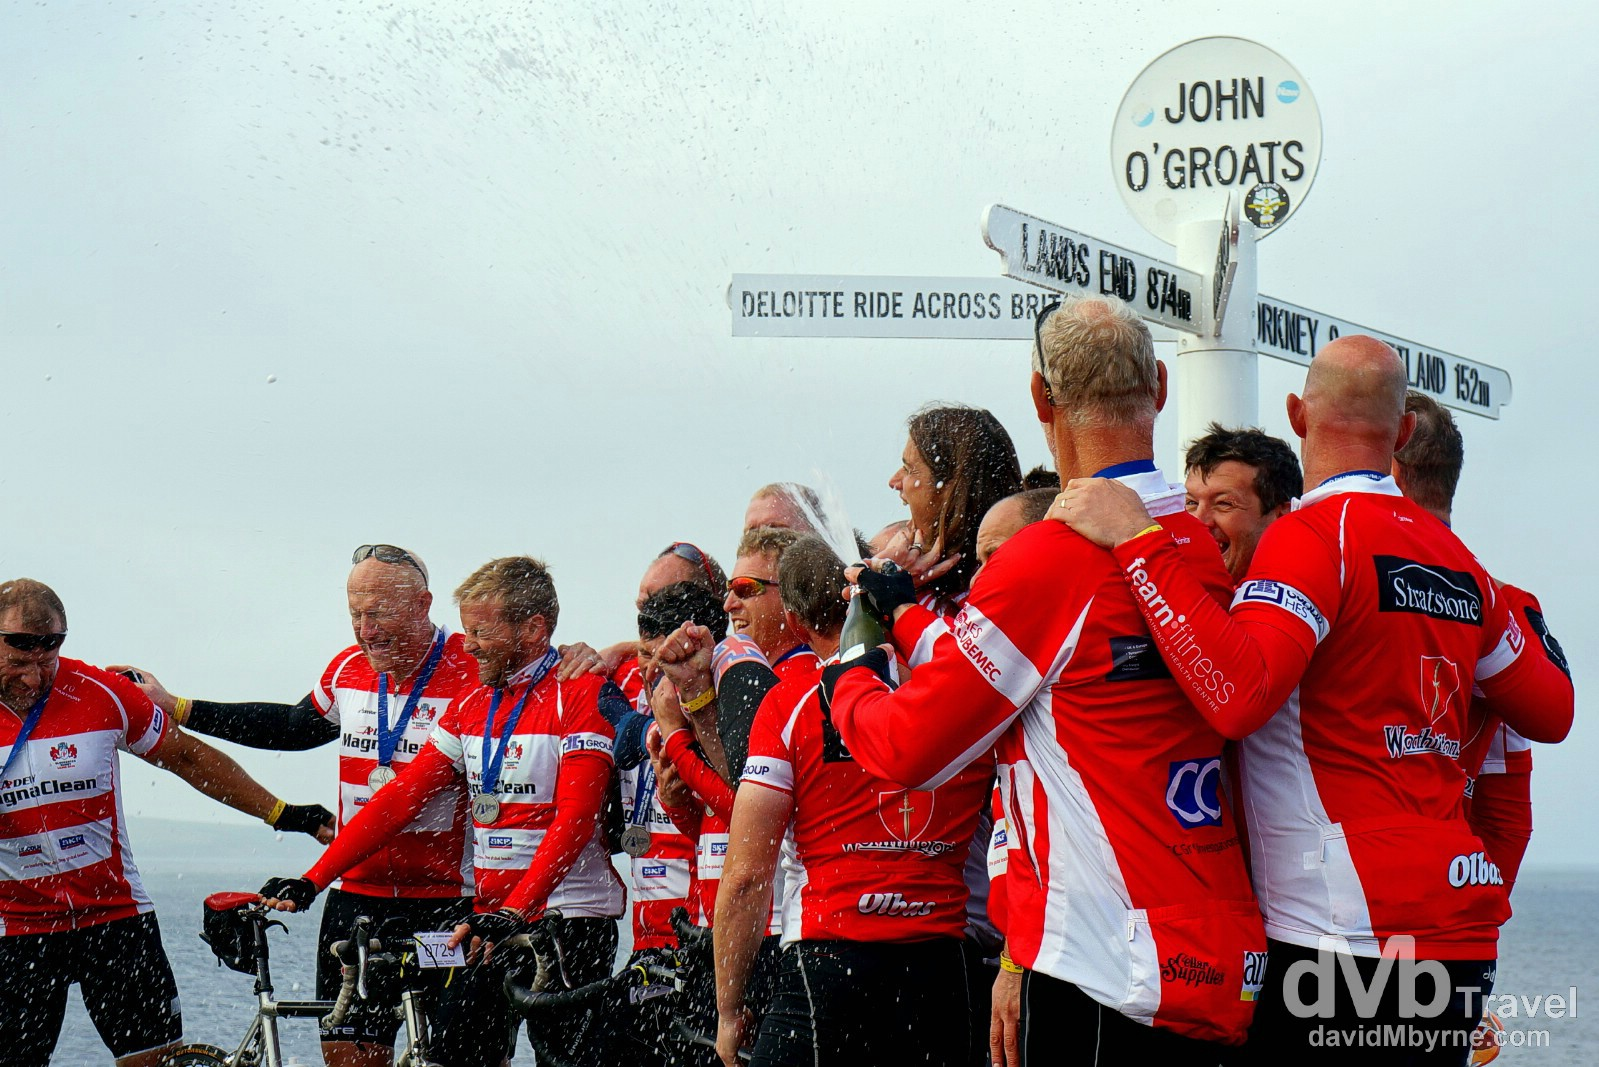 Deloitte Ride Across Britain 2014 participants celebrate completing the 9-day, 874 mile cycle from Land's End by the post at John O'Groats in Scotland. September 14, 2014.